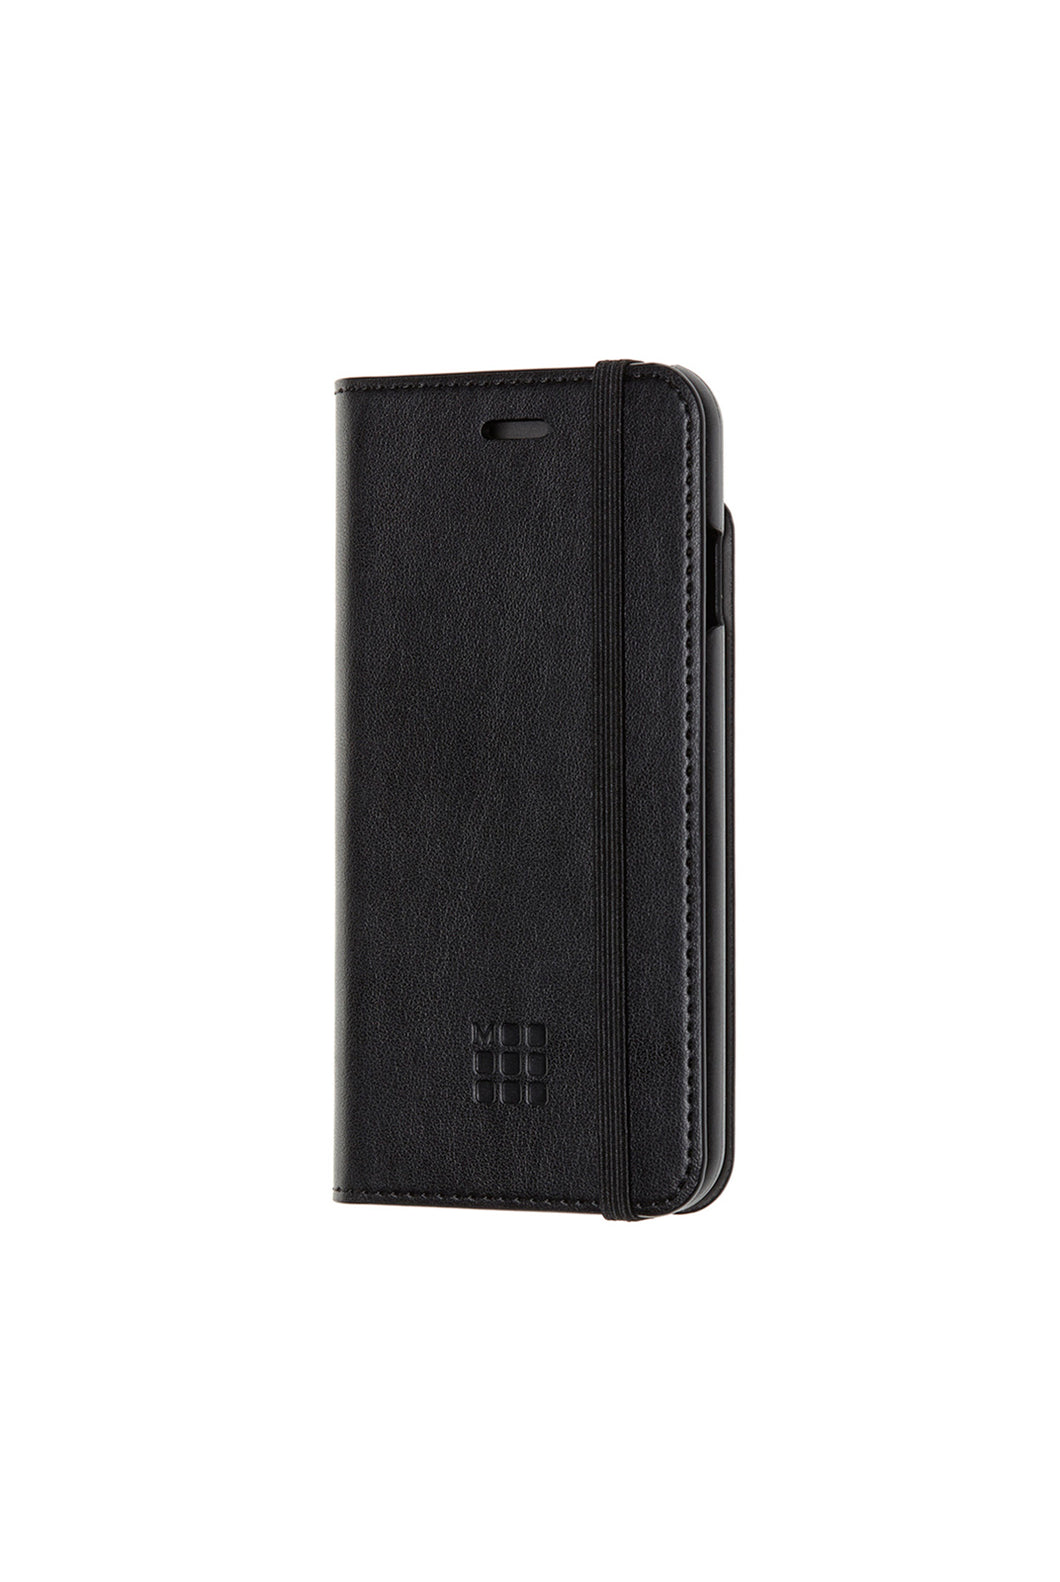 Moleskine - Hard Case PU Samsung Galaxy S9+ - Black